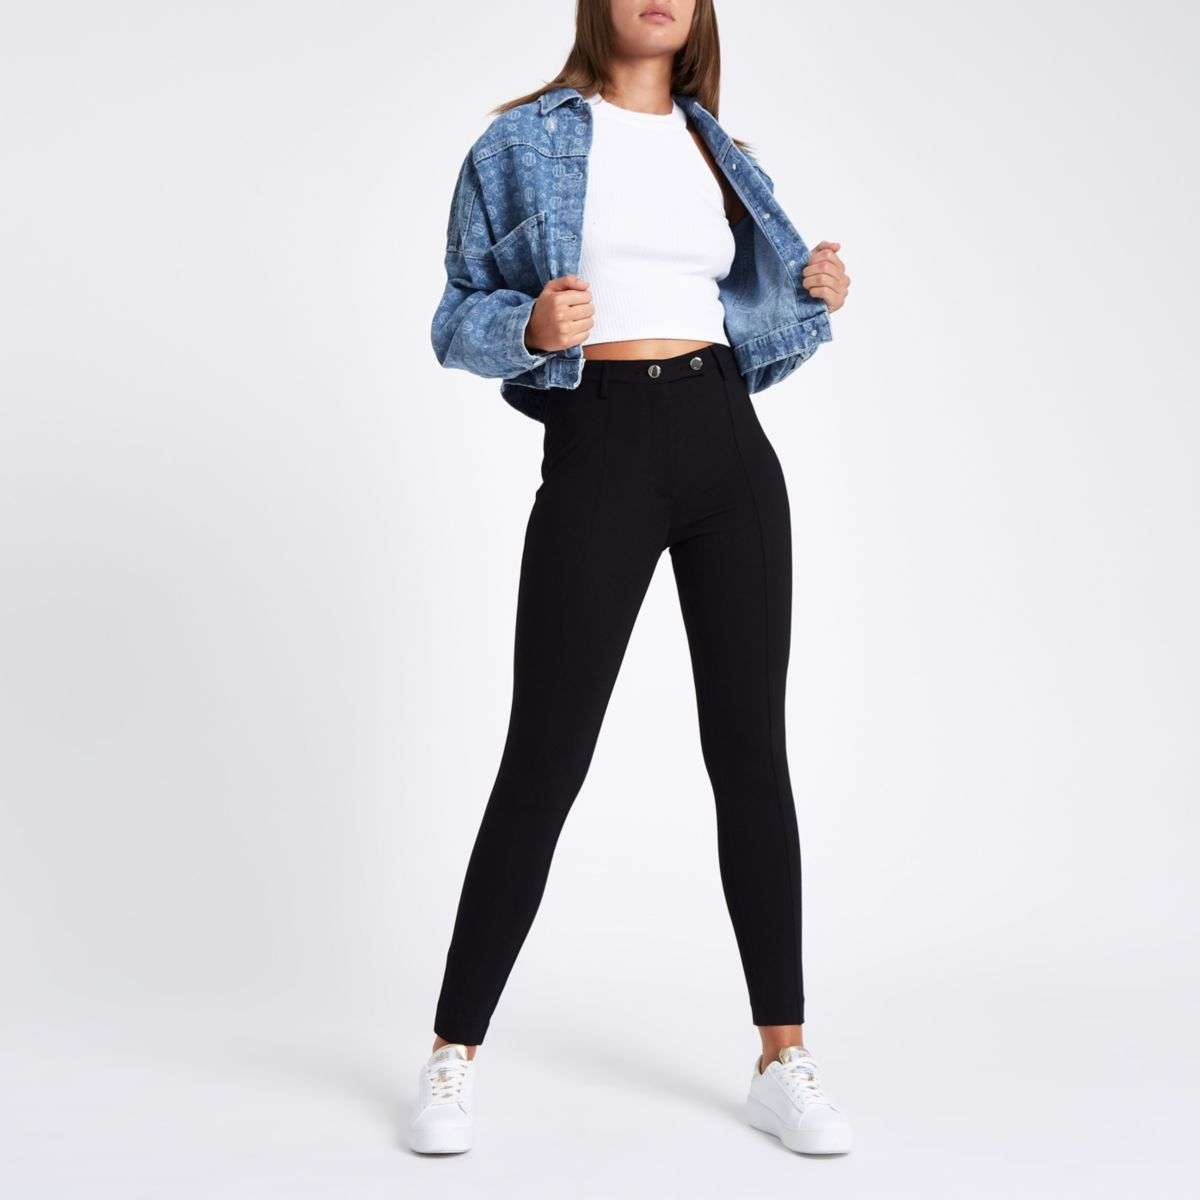 Black high waisted fitted trousers